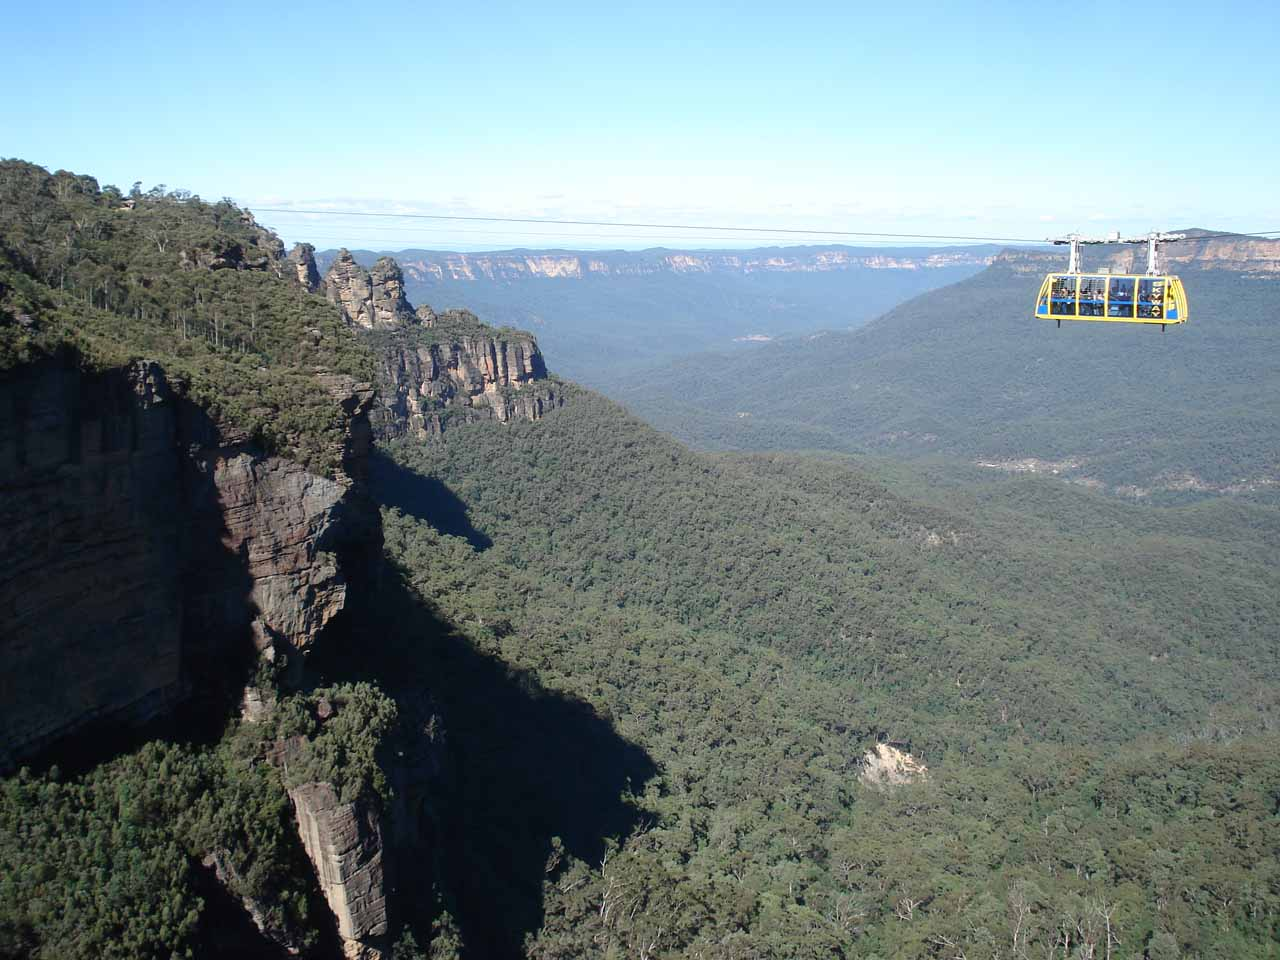 A short drive to the west of Wentworth Falls led us to the town of Katoomba, where this view of the Blue Mountains as well as the Three Sisters and the SkyWay could be seen from Echo Point